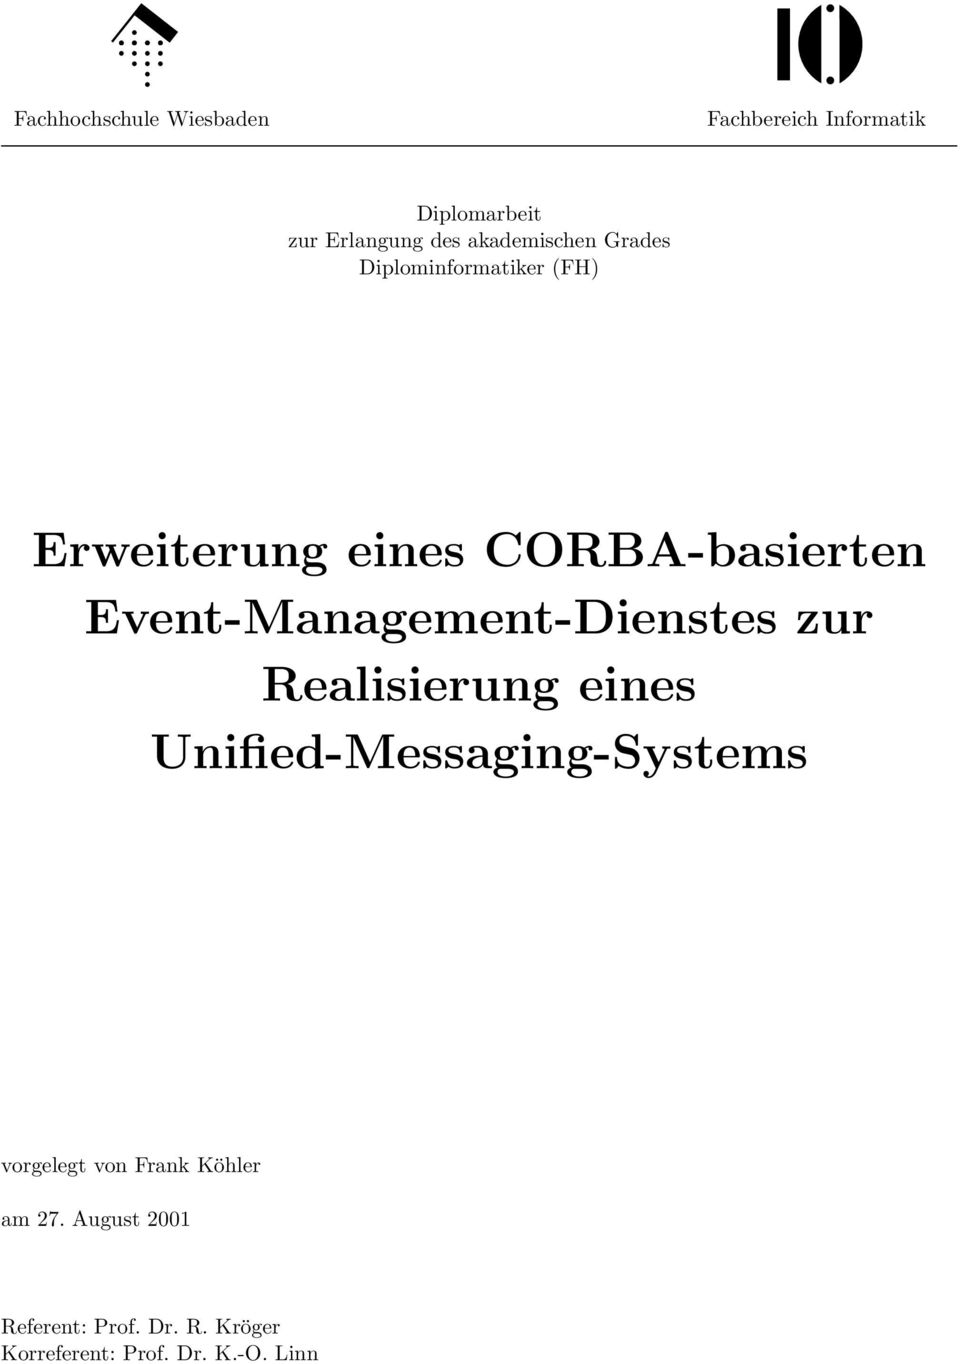 Event-Management-Dienstes zur Realisierung eines Unified-Messaging-Systems vorgelegt